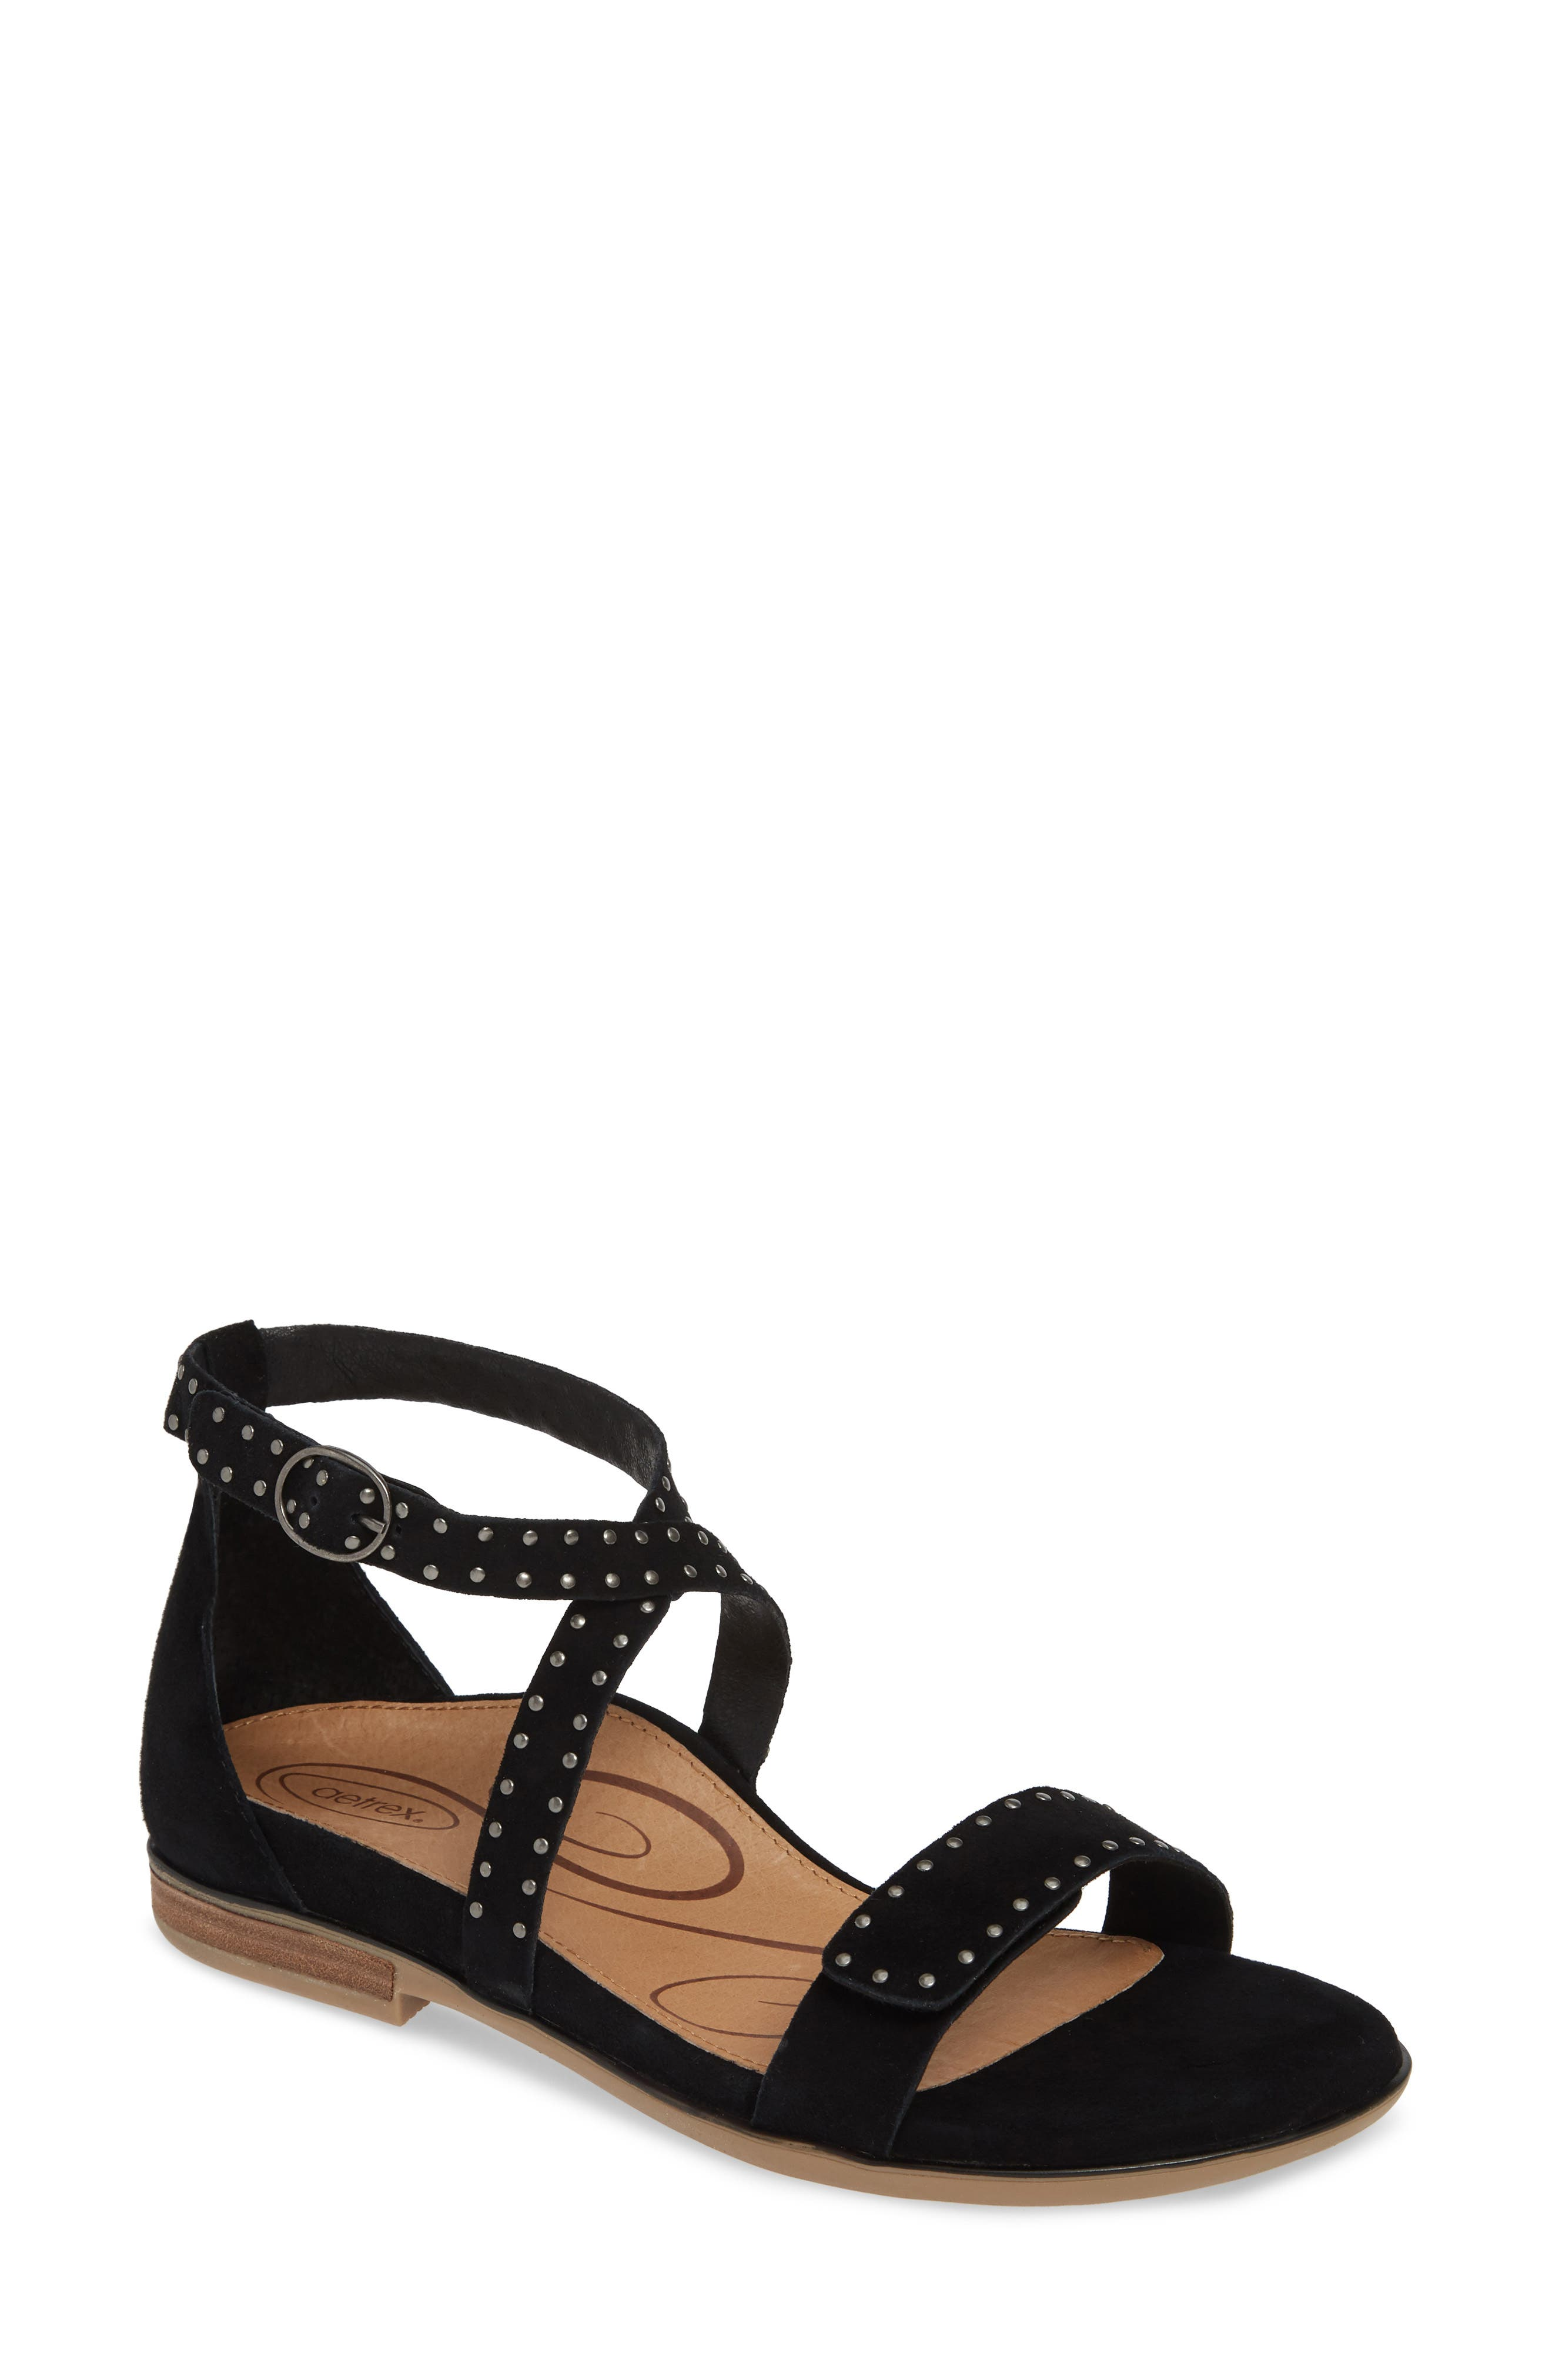 AETREX Hailey Studded Sandal, Main, color, BLACK SUEDE